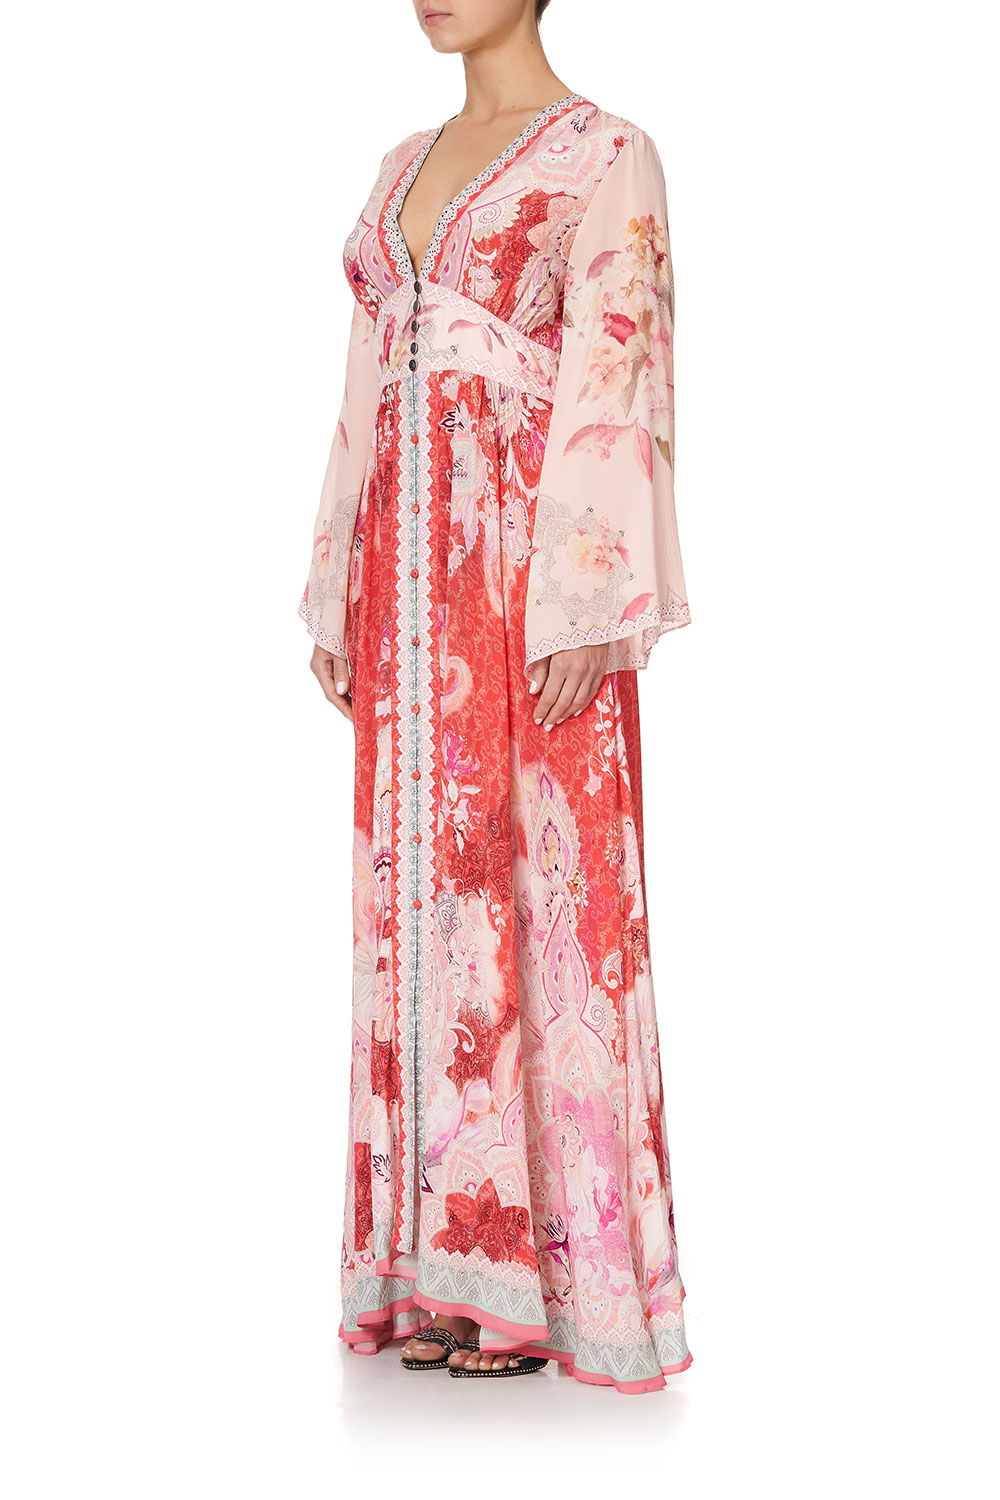 camilla_kimono_sleeve_dress_with_shirring_detail_palace_muse_6